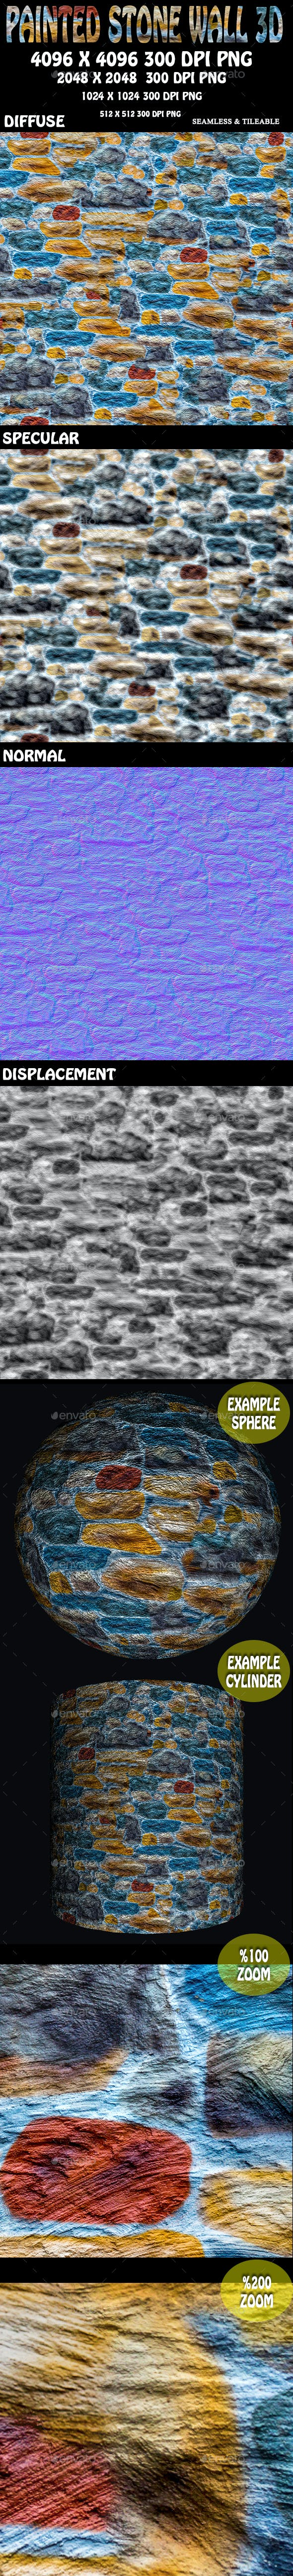 Painted Stone Wall 3D Texture - 3DOcean Item for Sale